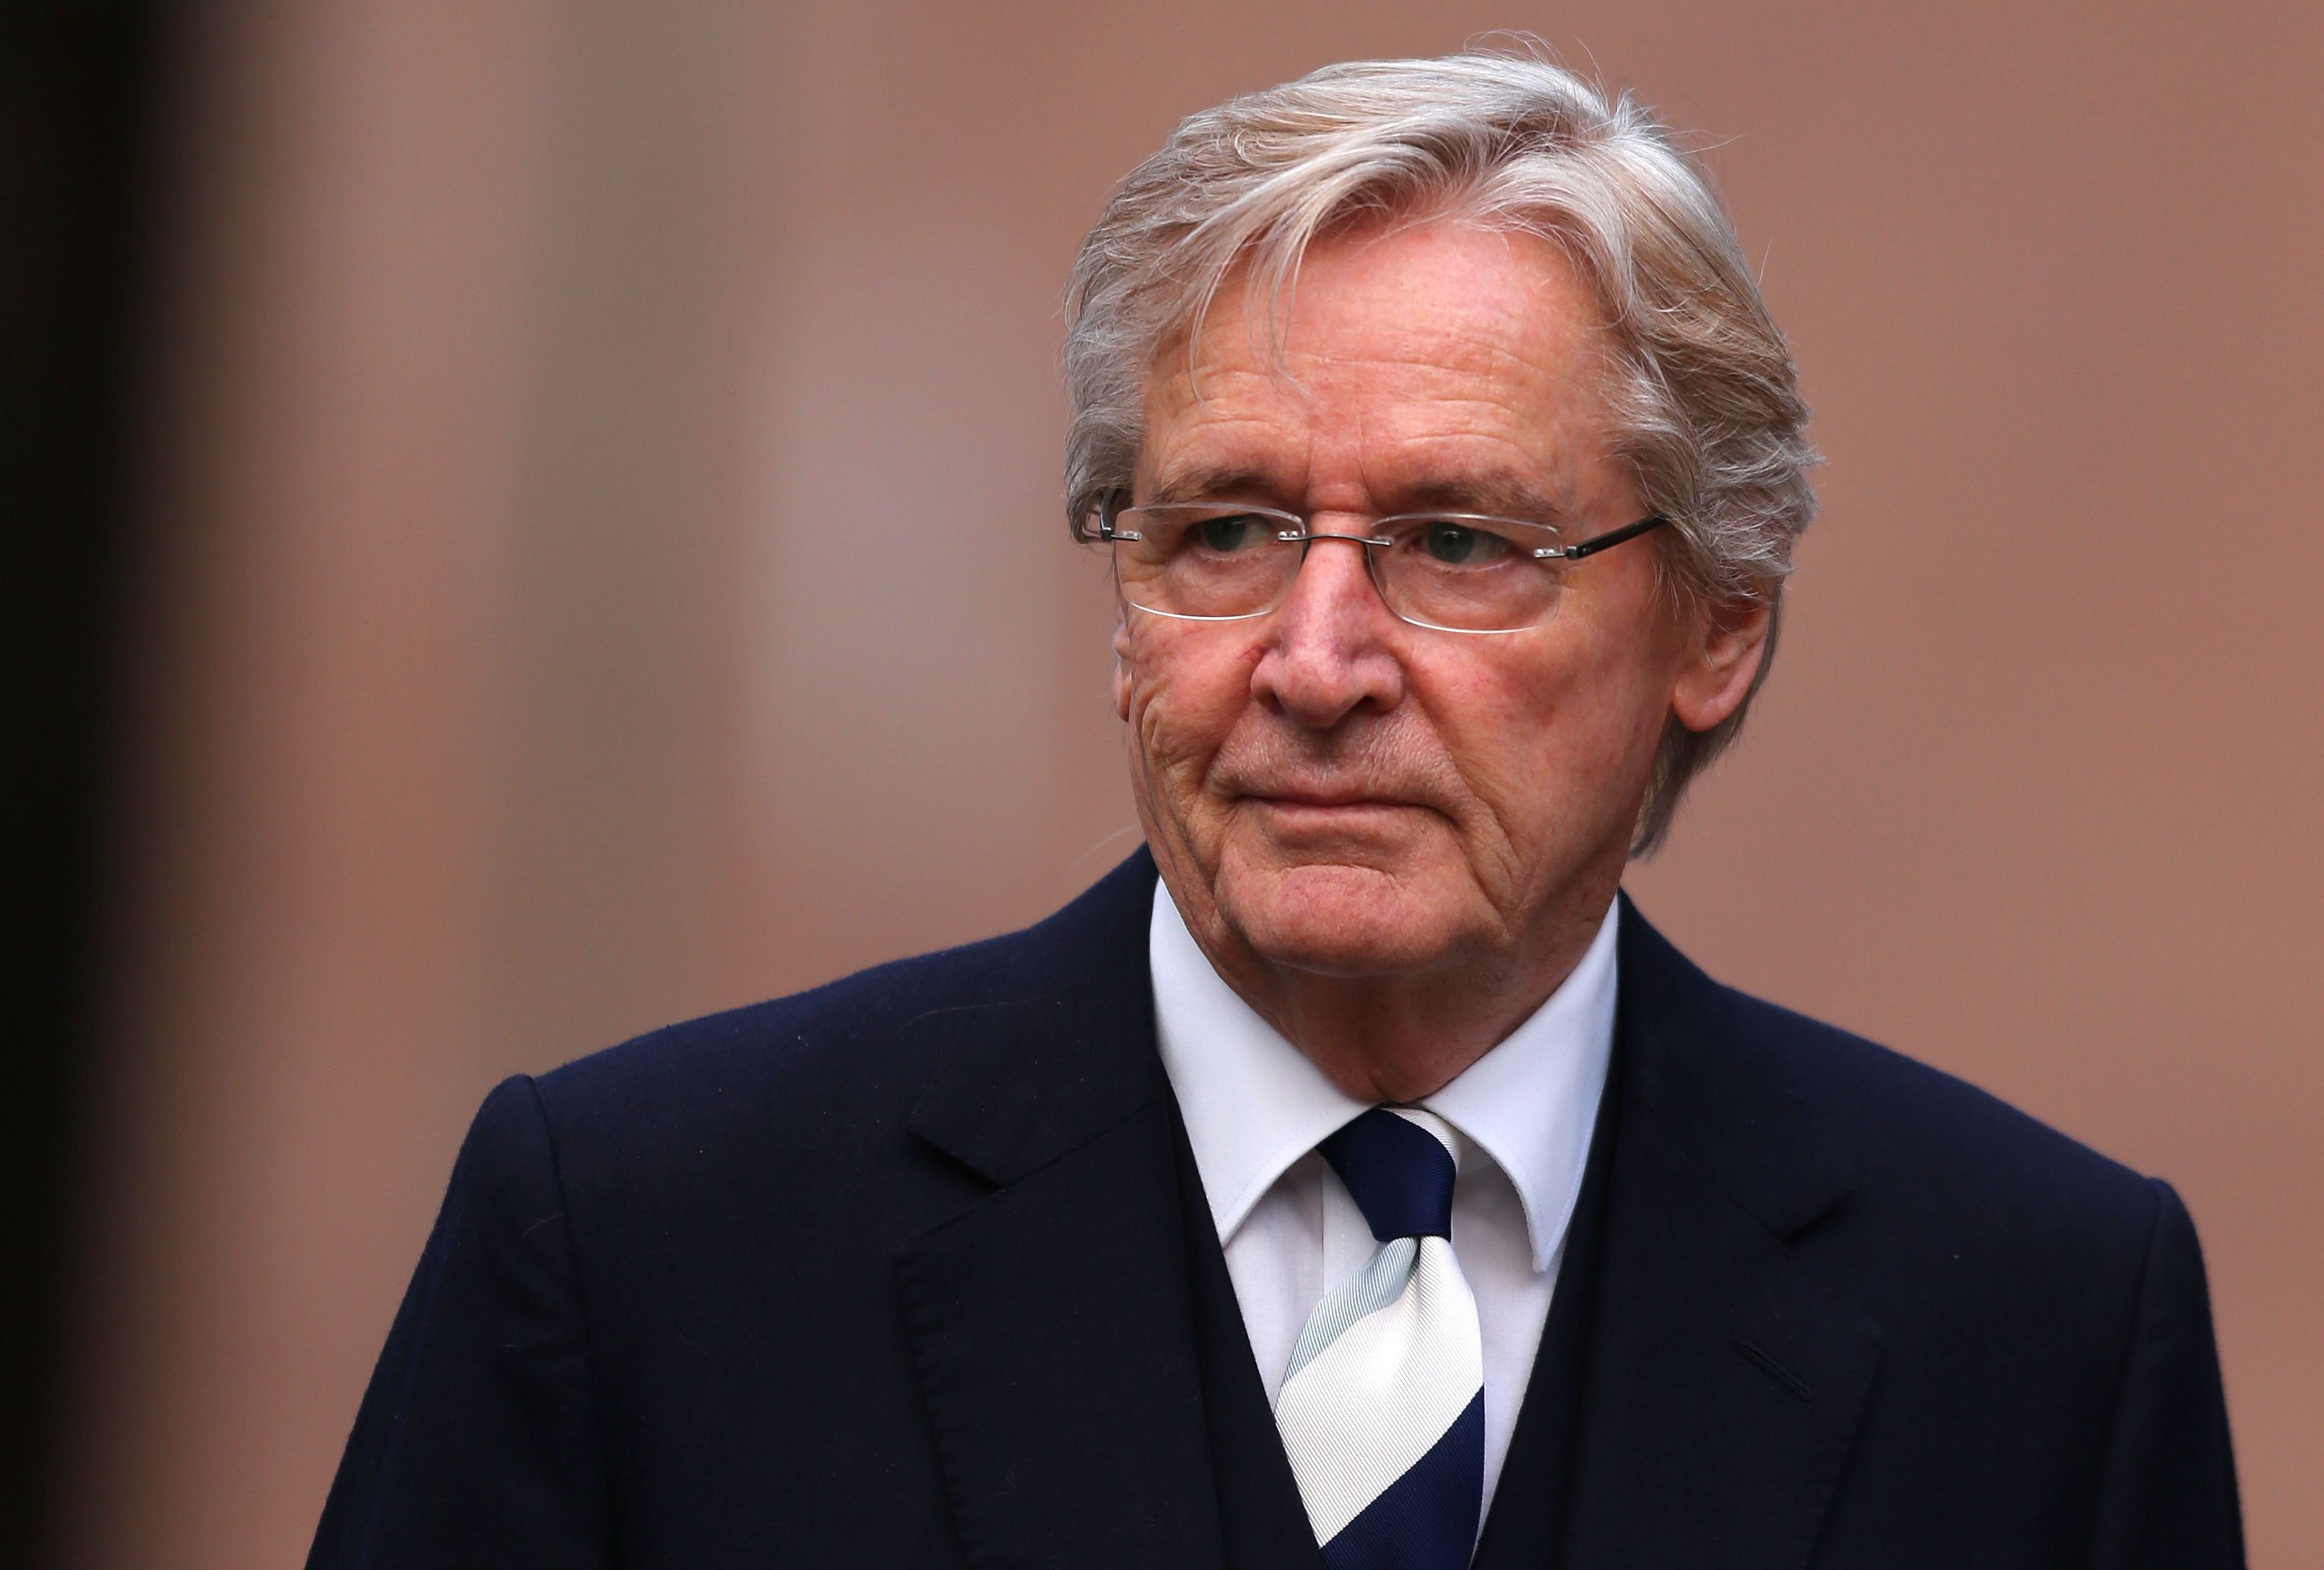 Coronation Street's Bill Roache Reveals Car Crash Stopped Him Reaching Dying Daughter's